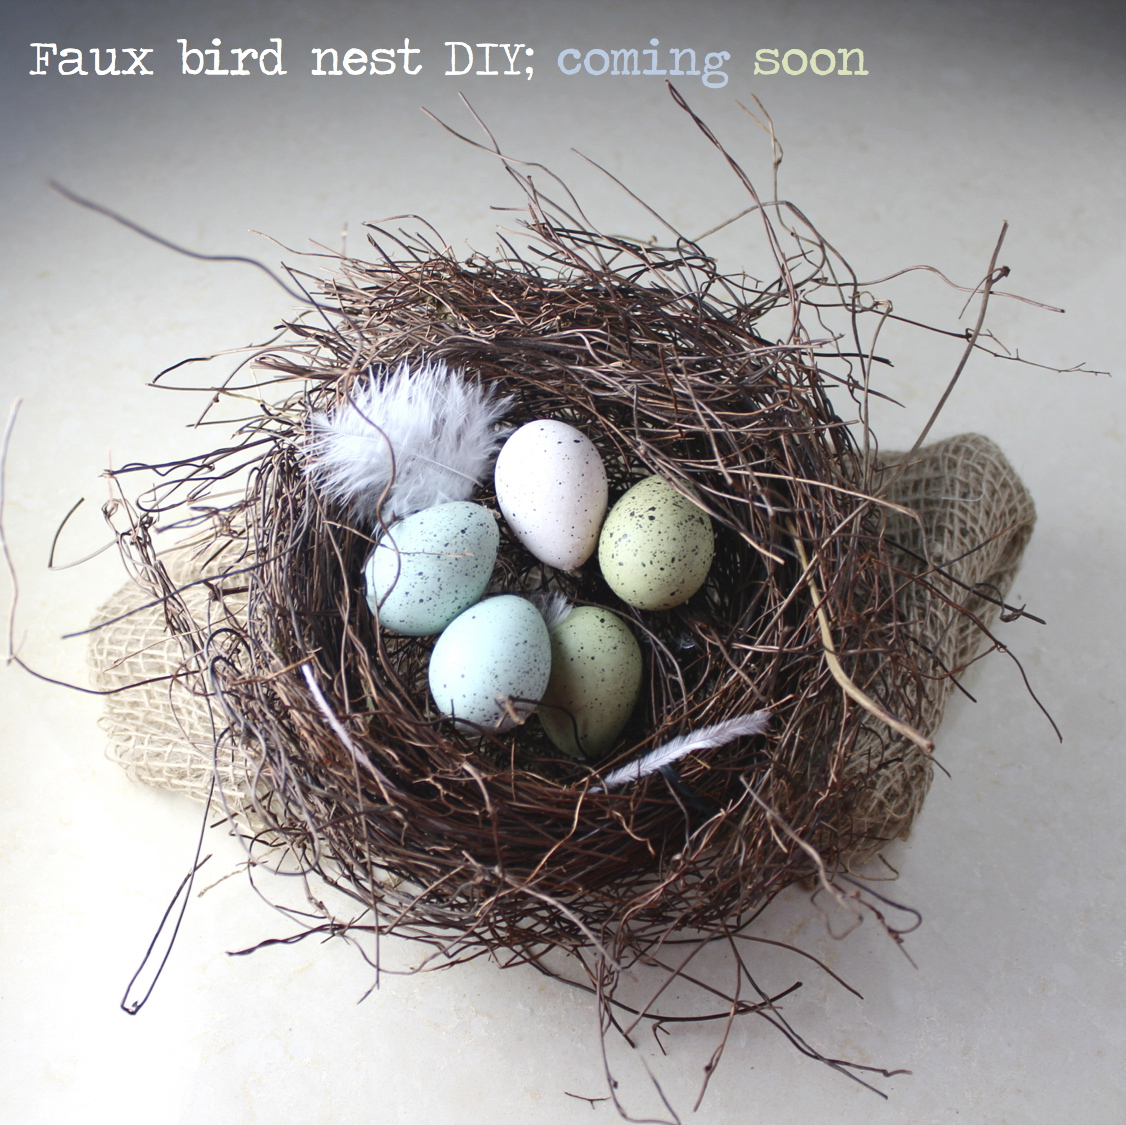 faux bird nest DIY